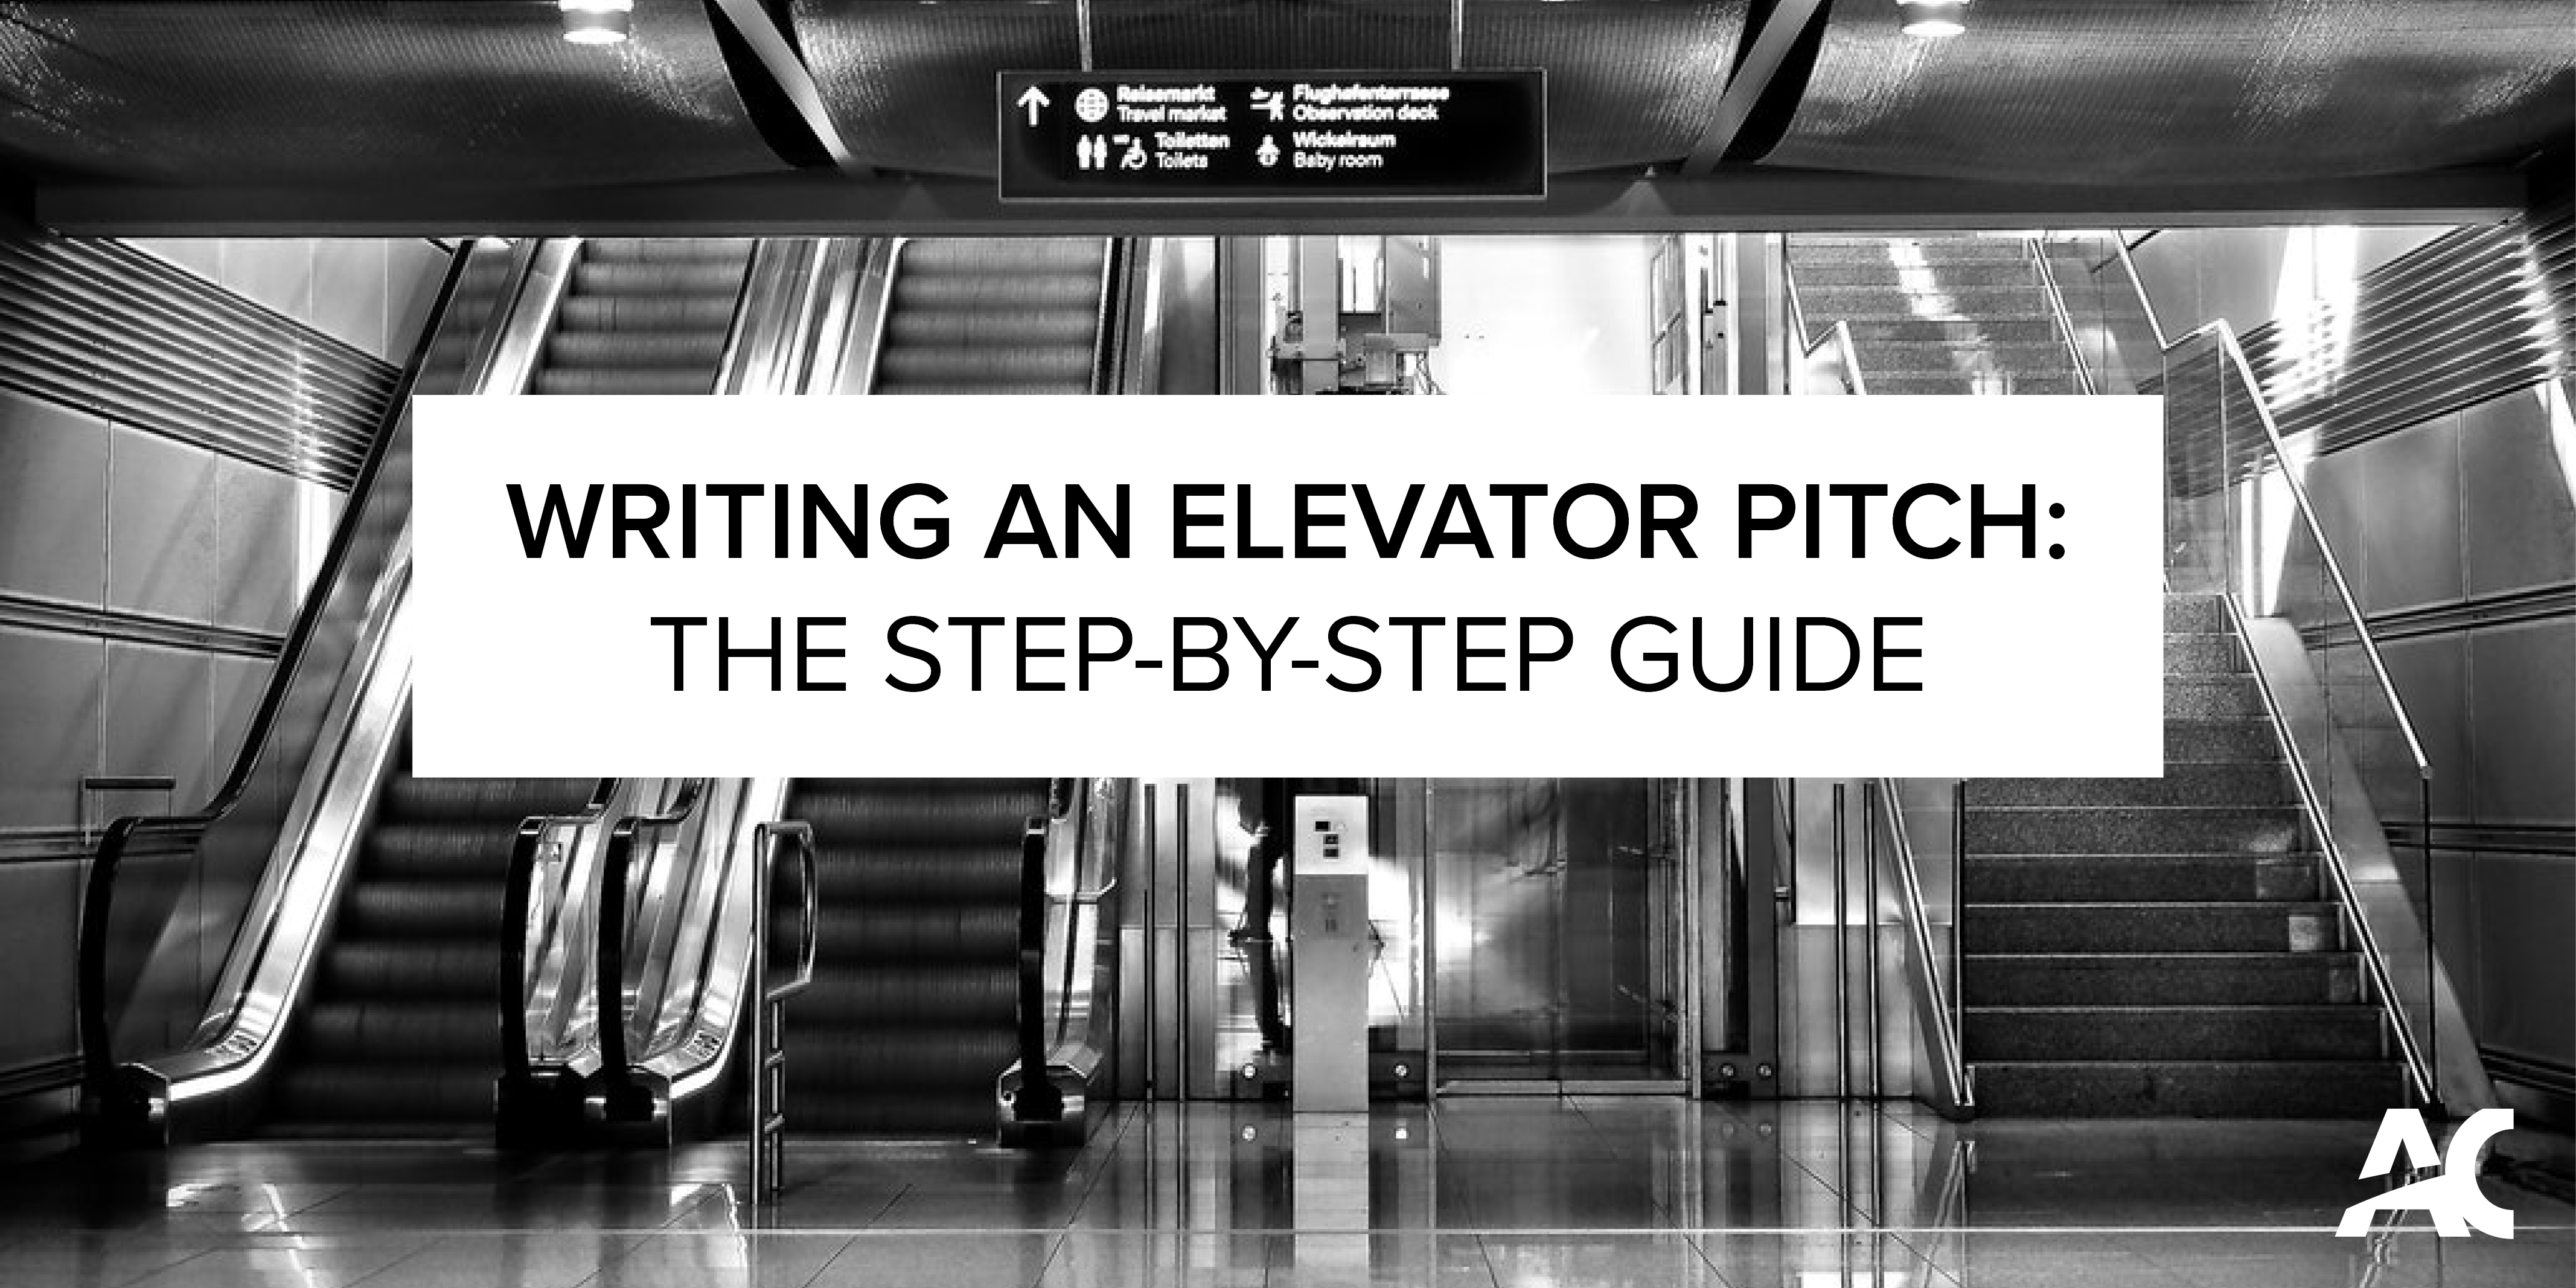 Writing an Elevator Pitch as a Student: A Step-by-Step Guide